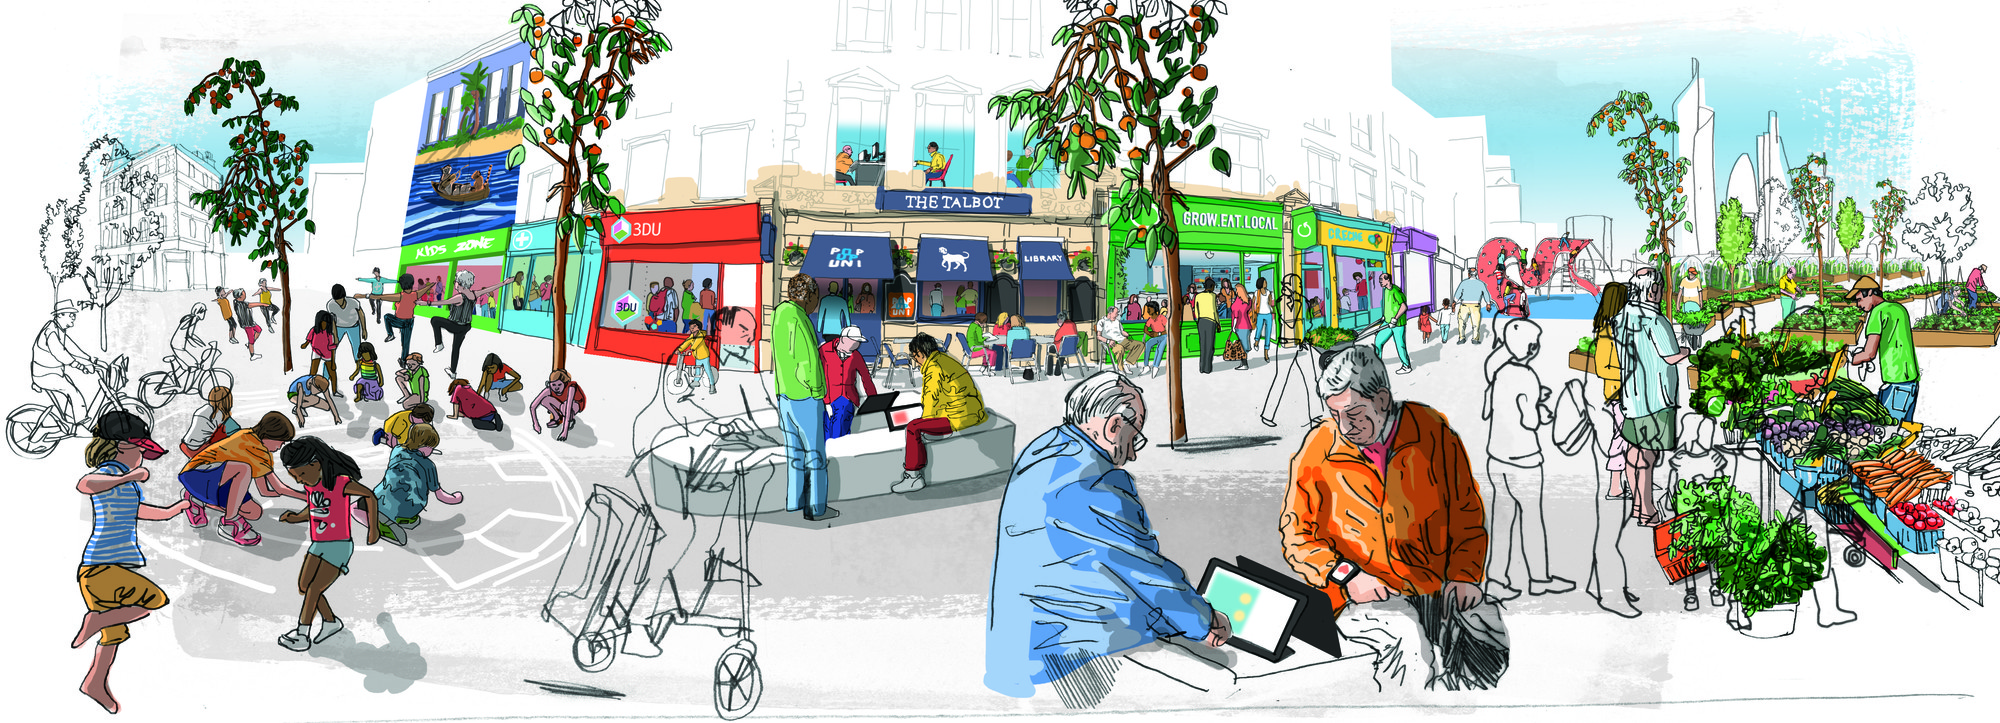 Take Over Lease >> Gallery of RIBA Examines How Over 60s Might Impact Future Cities - 6